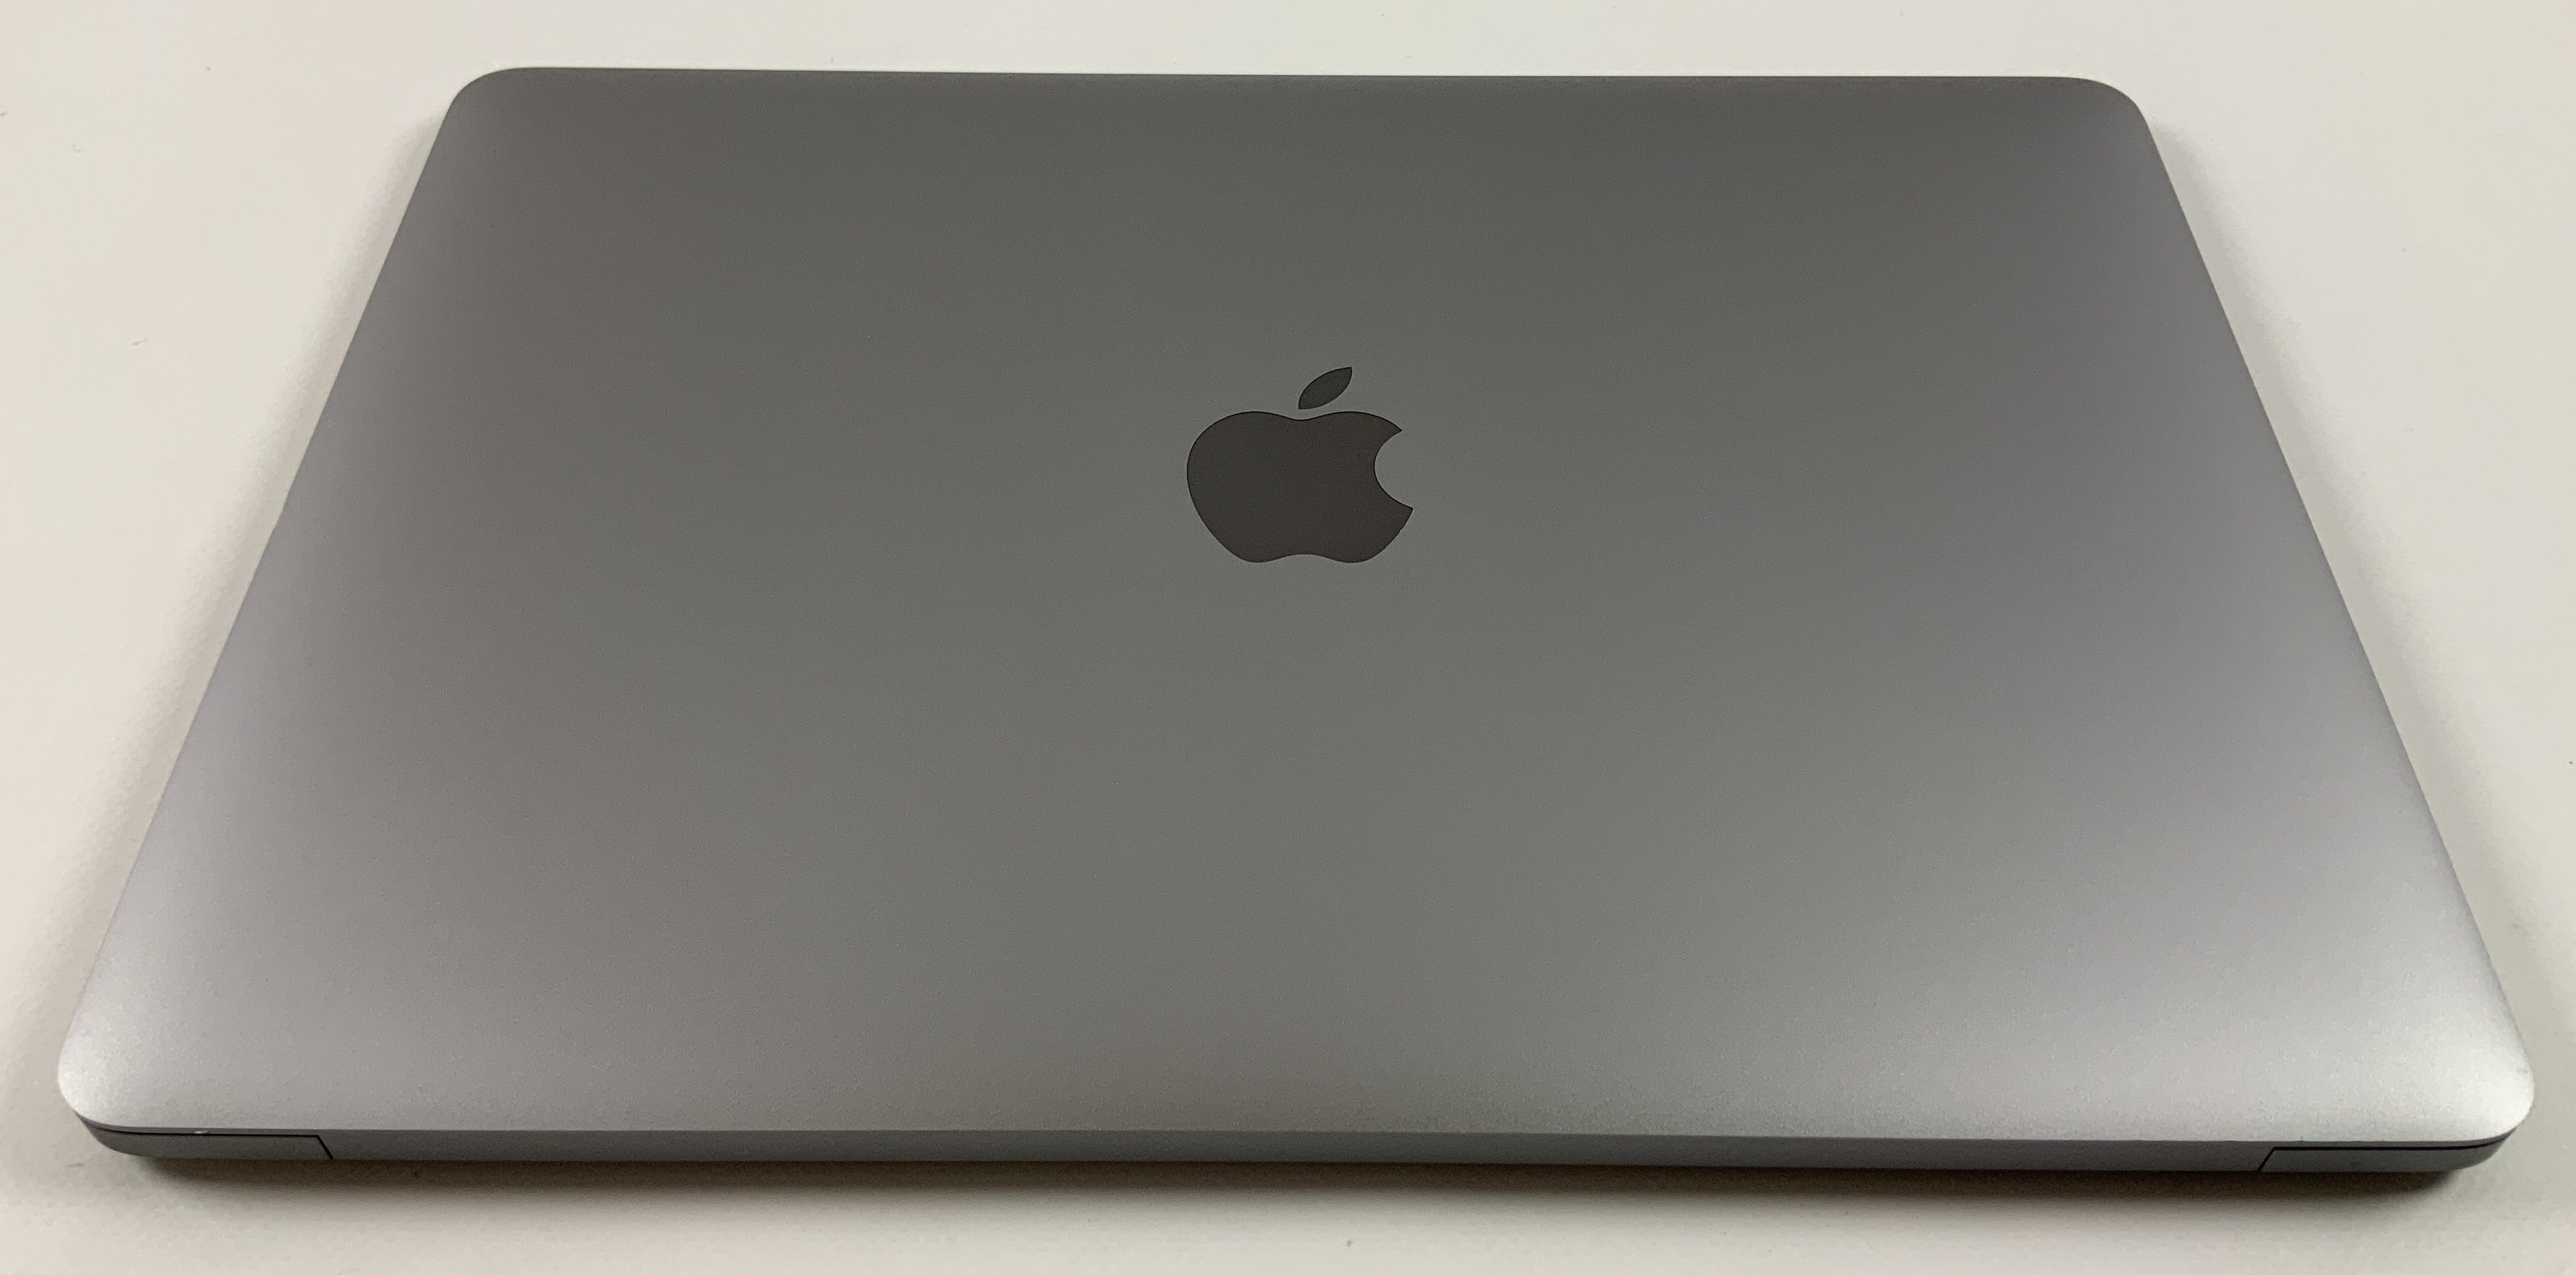 "MacBook 12"" Mid 2017 (Intel Core m3 1.2 GHz 8 GB RAM 256 GB SSD), Space Gray, Intel Core m3 1.2 GHz, 8 GB RAM, 256 GB SSD, Kuva 2"